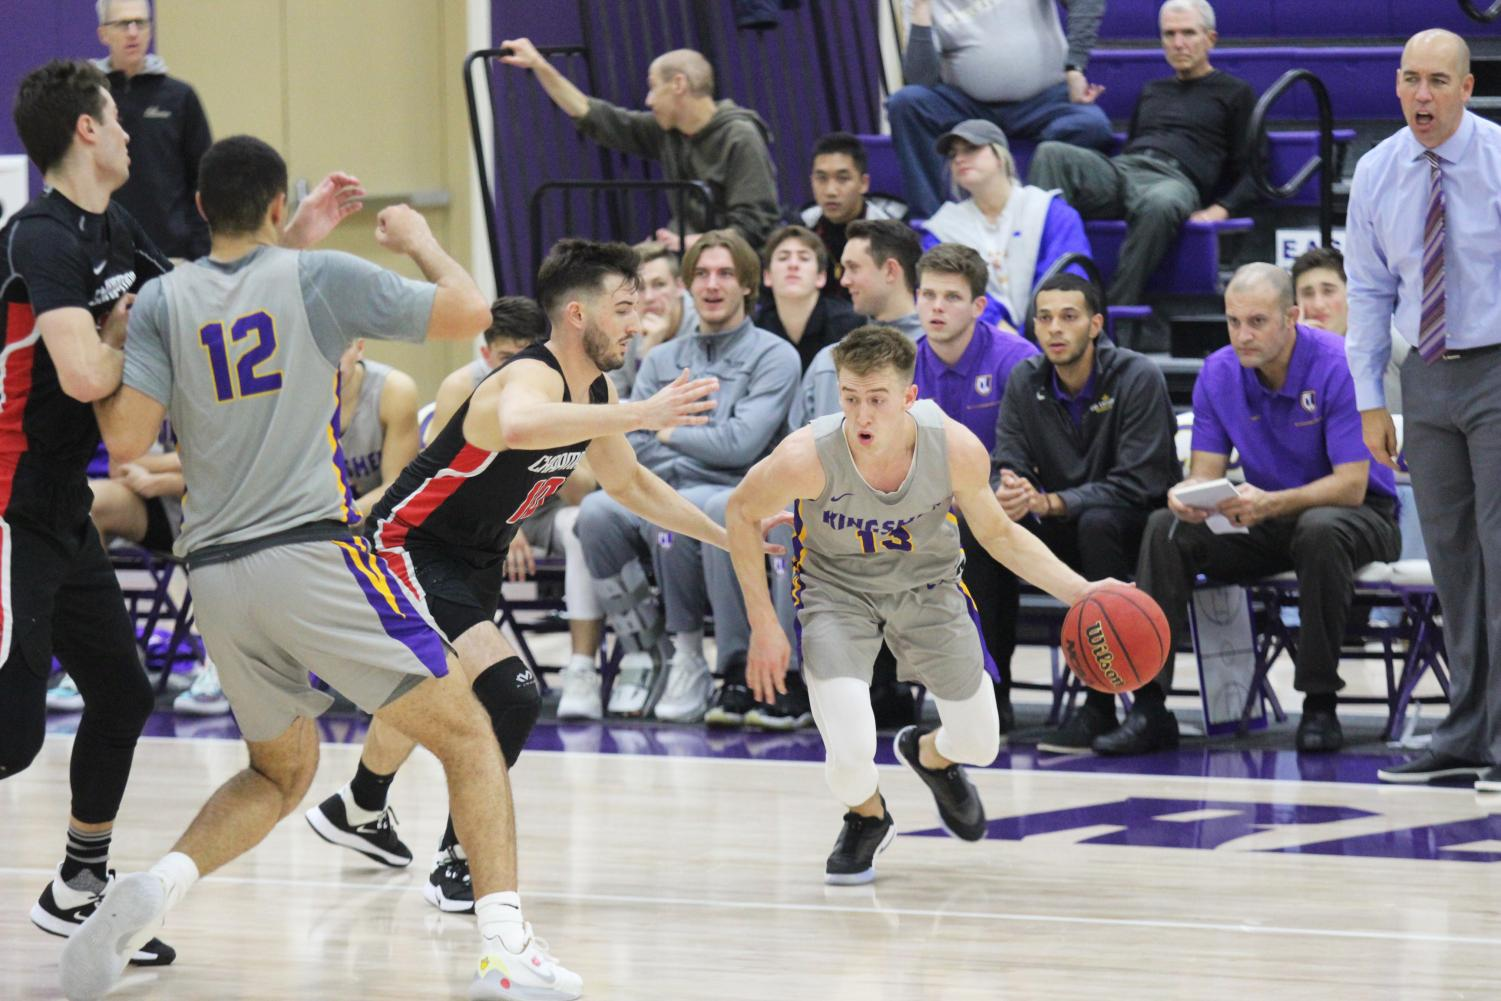 First-year forward Miles Houston attempts to get open as senior guard Palmer Chaplin dribbles the ball around Chapman shooting guard Colin Ferrier.